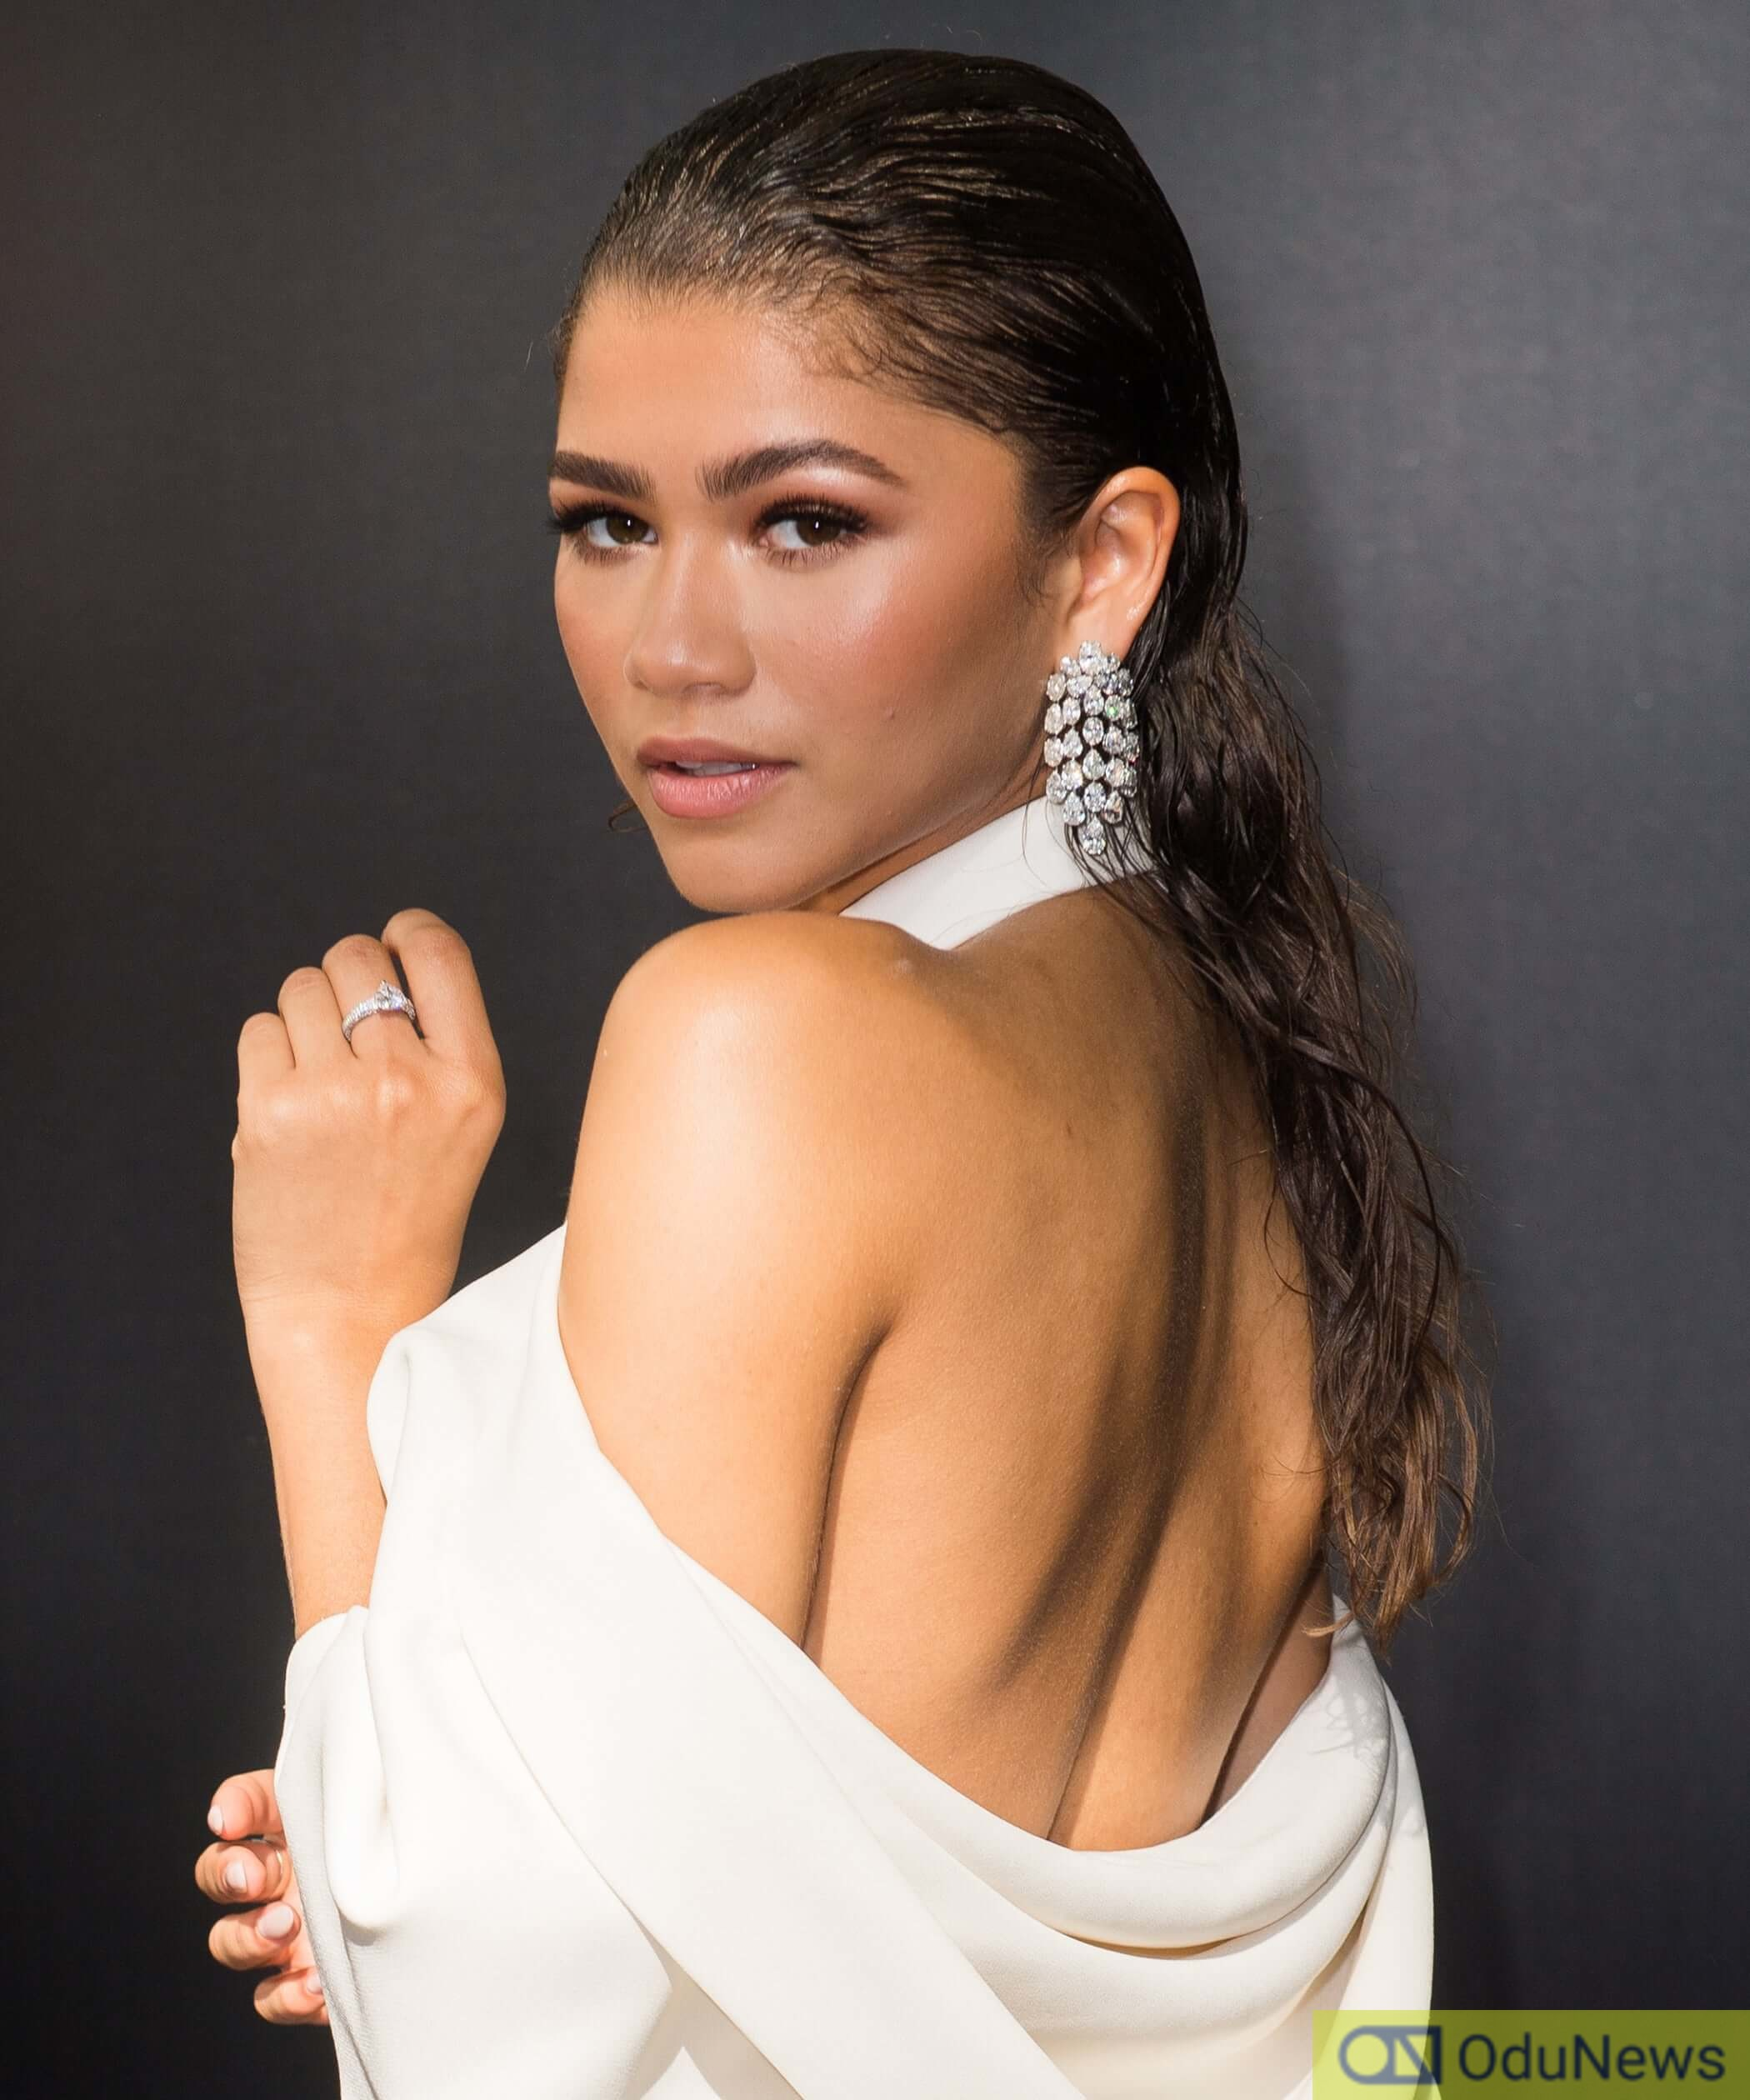 Zendaya says her role is a very small one